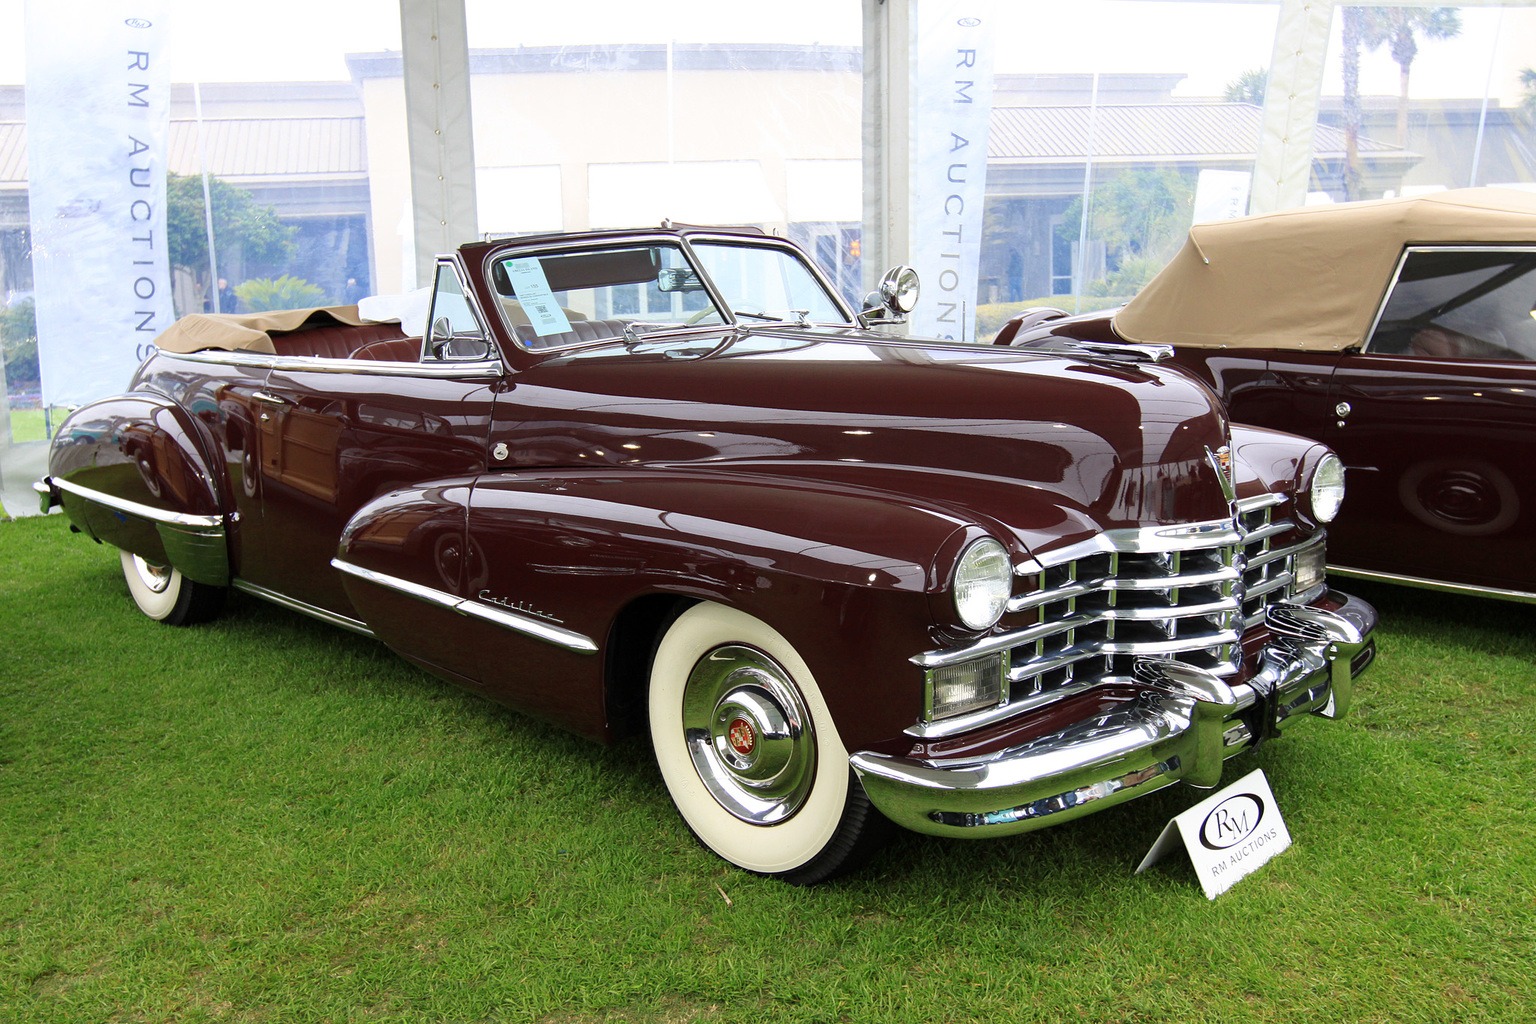 1947 Cadillac Series 62 Convertible Coupe Supercars Net